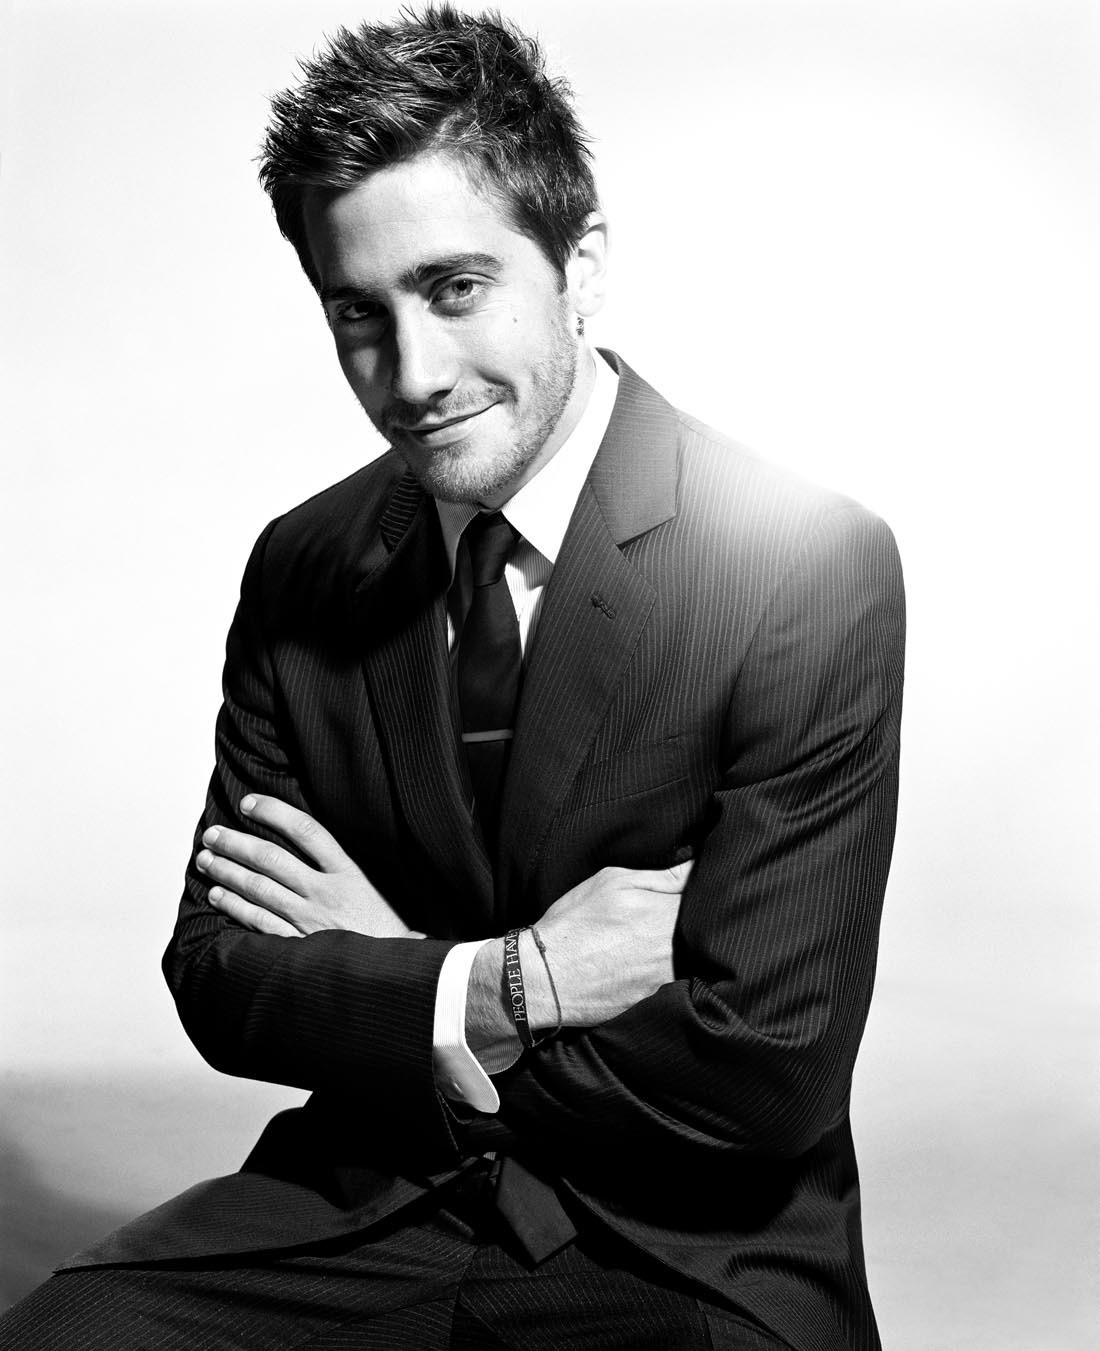 Jake Gyllenhaal photo #58378